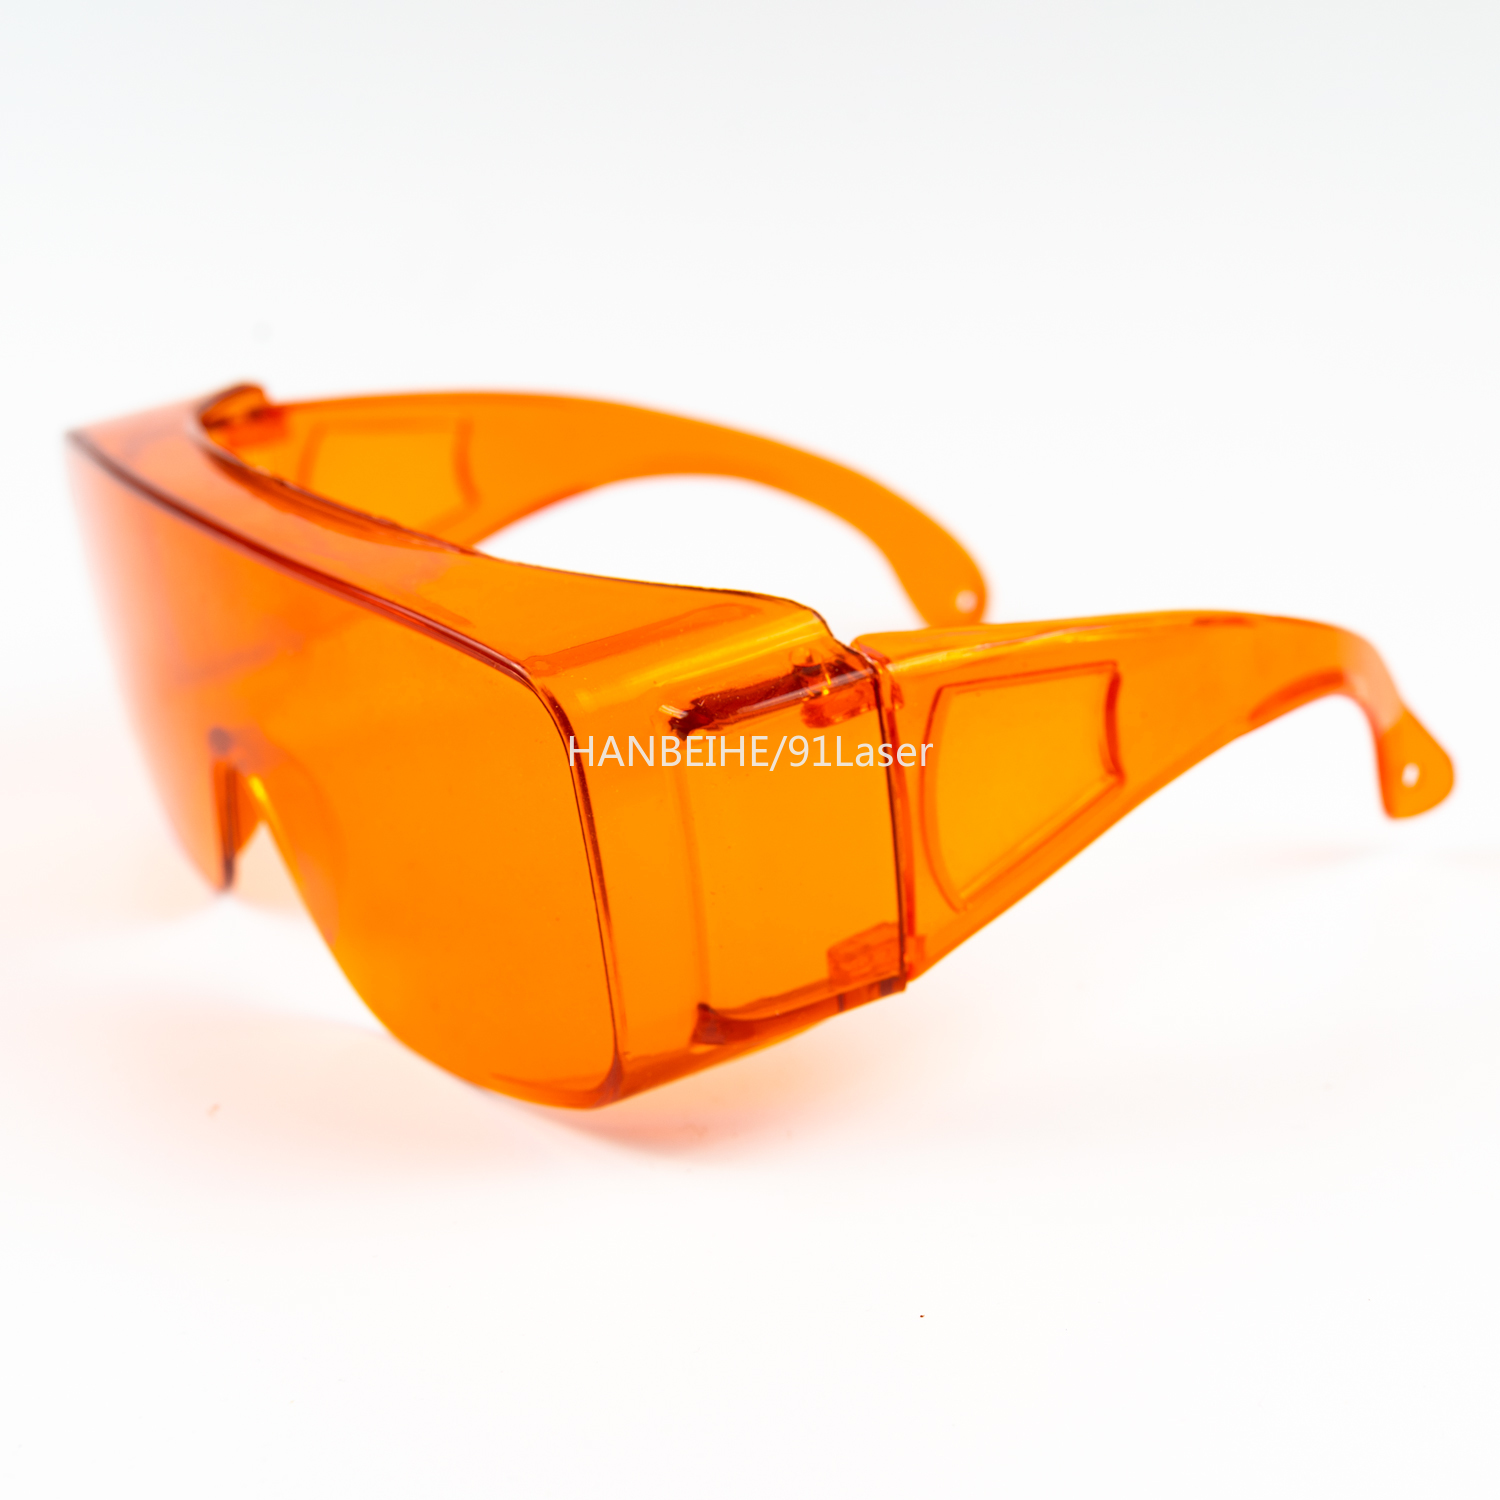 O D 6 laser safety glasses for 405 450 473 515 520 532nm lasers CE certified